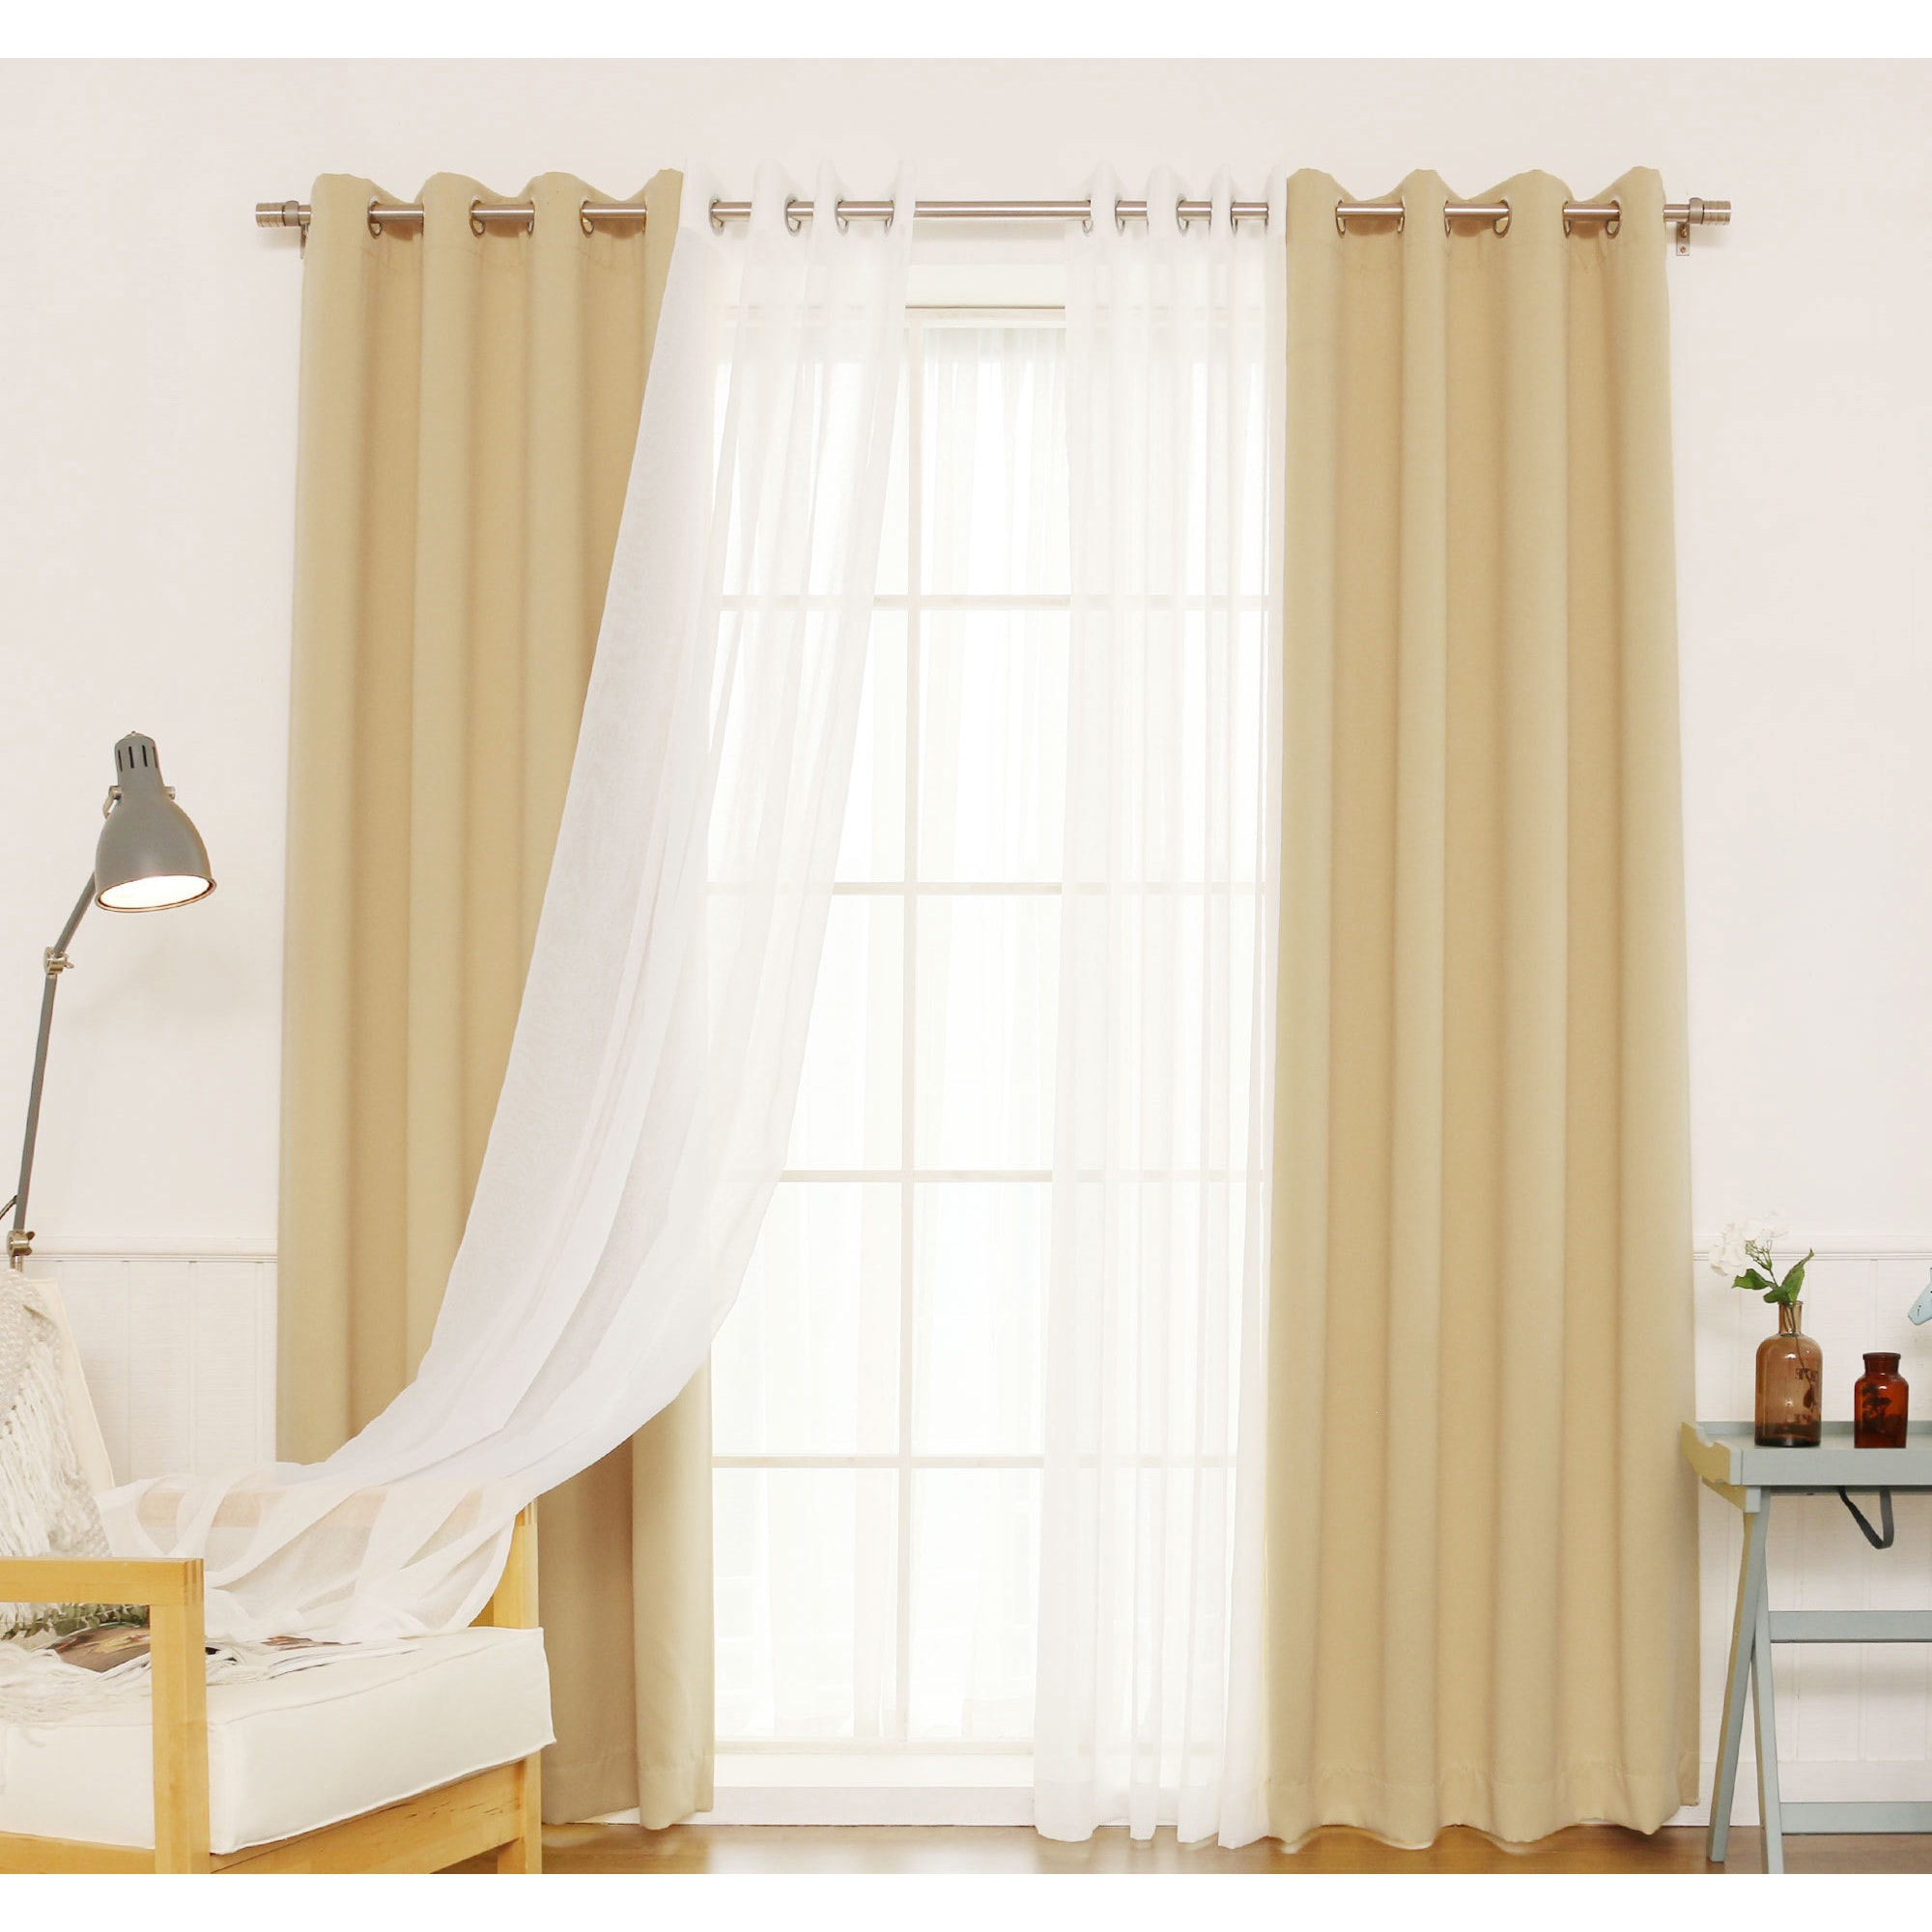 Shop Aurora Home MIX & MATCH CURTAINS Blackout and Muji Sheer 84 ...